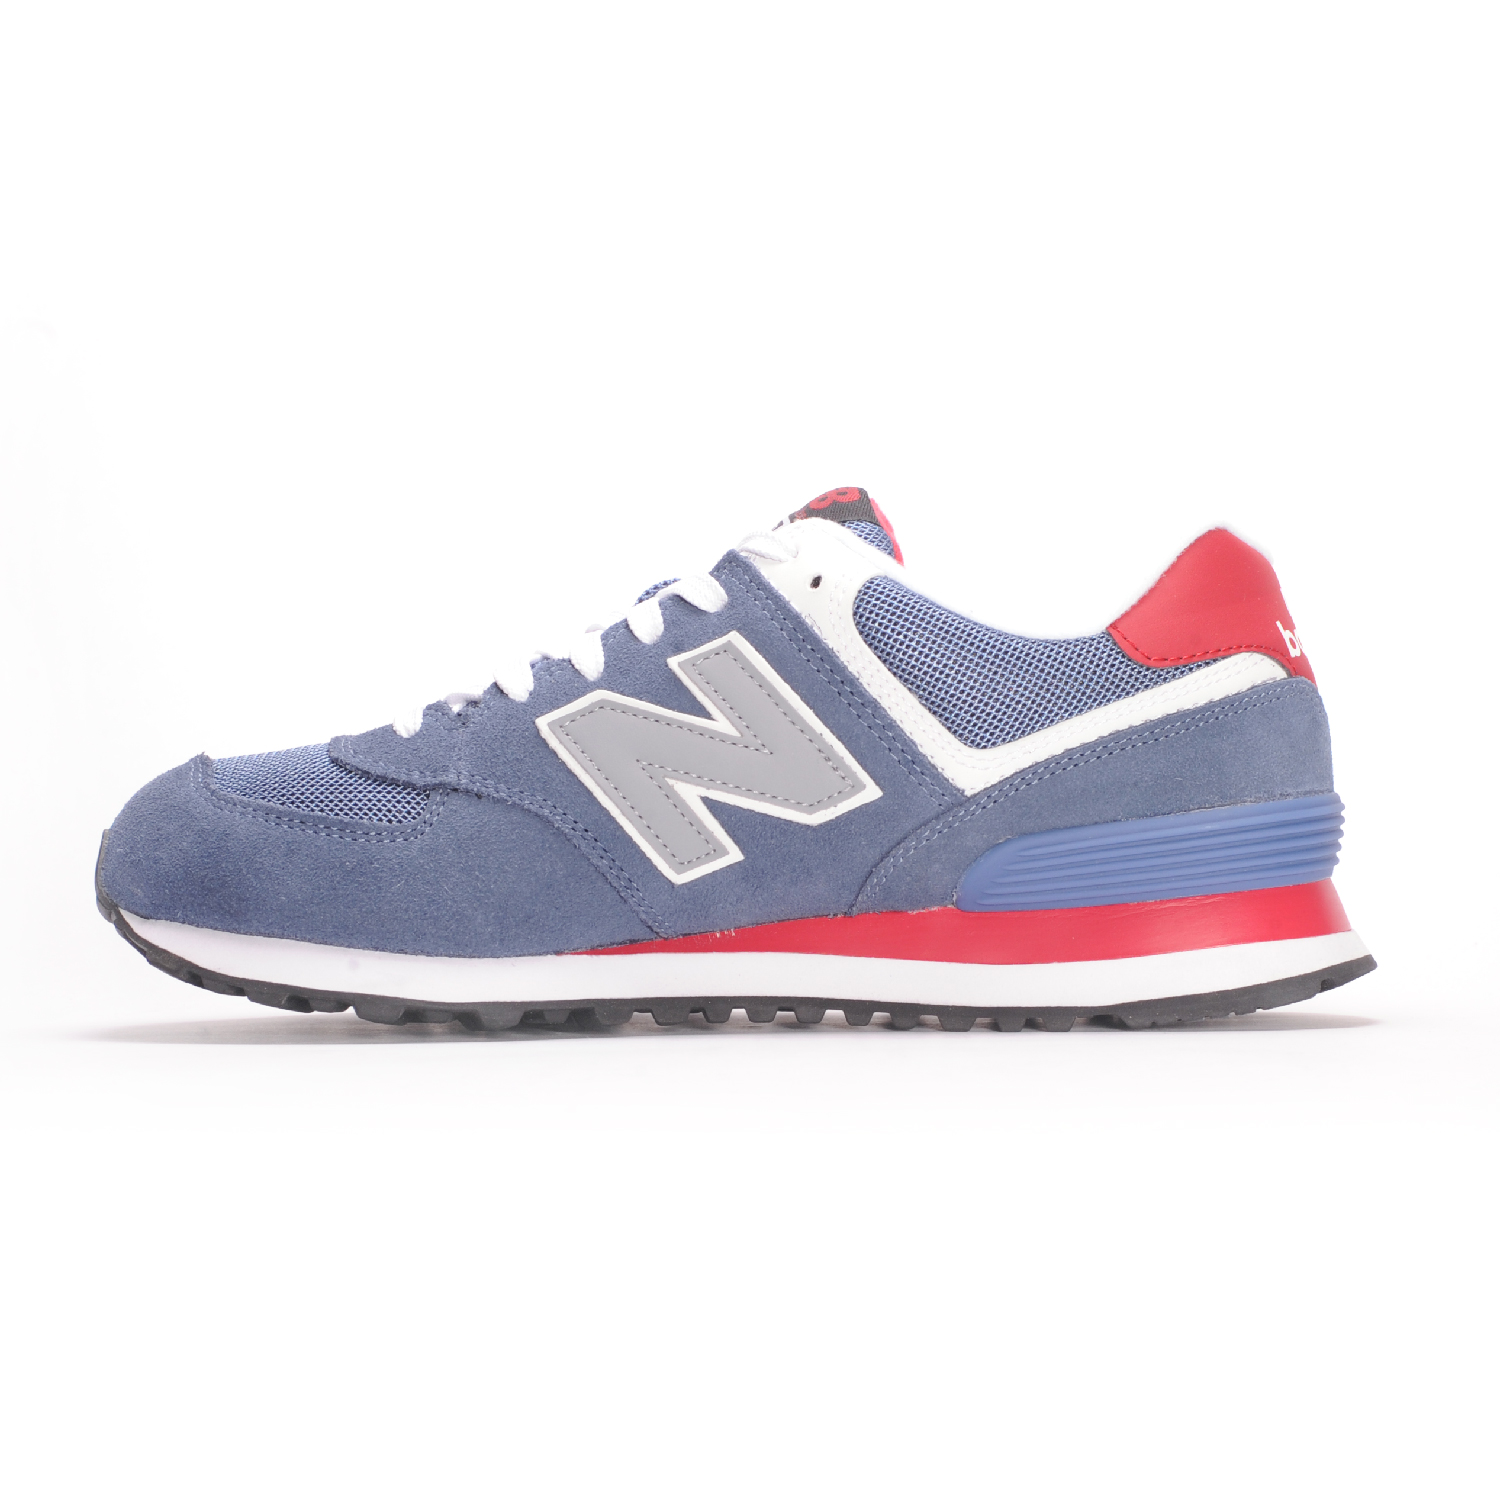 new balance 574 crater with red and light grey